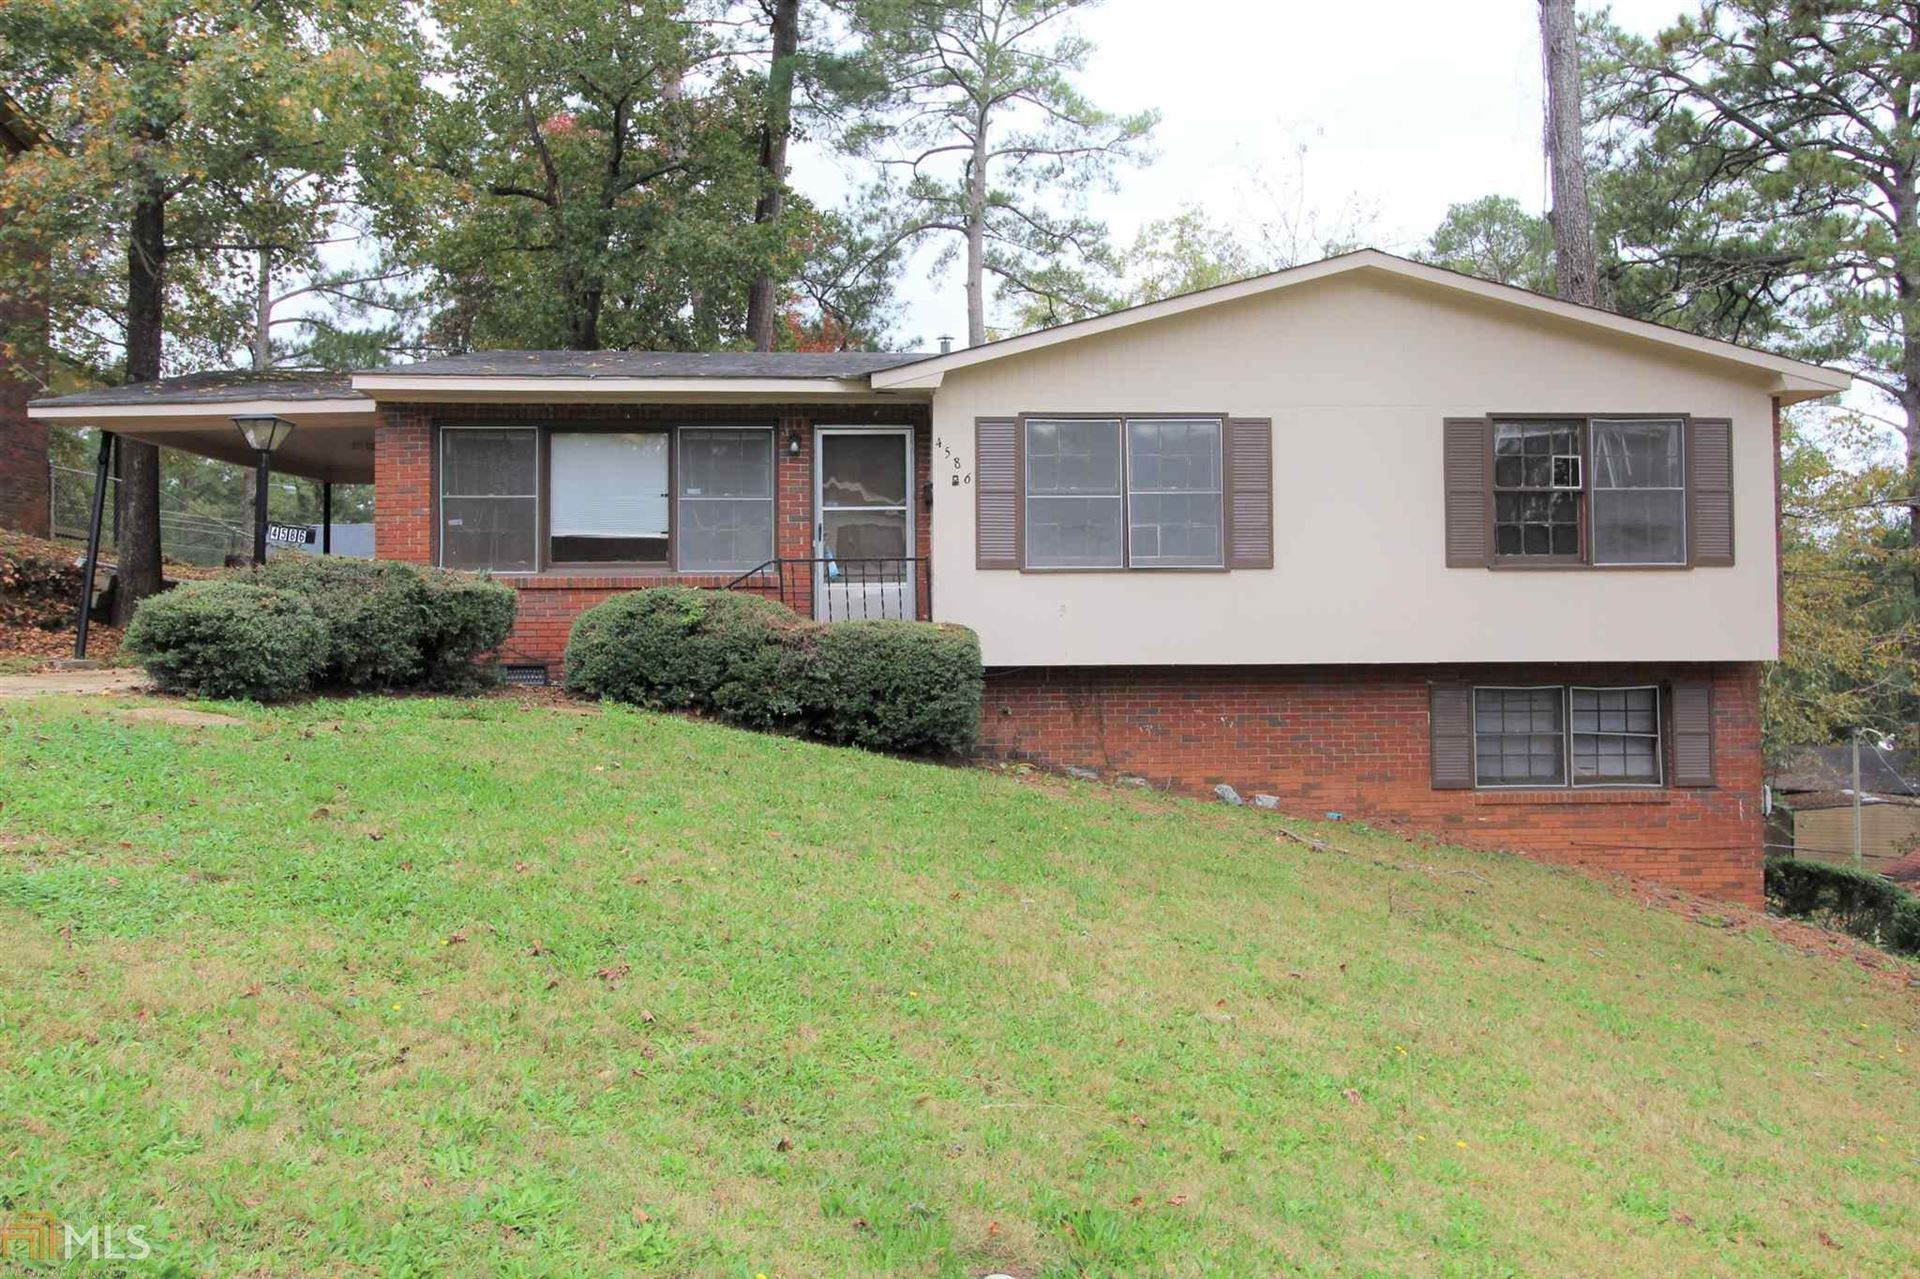 4586 Dawn Ct, Columbus, GA 31907 - #: 8934278